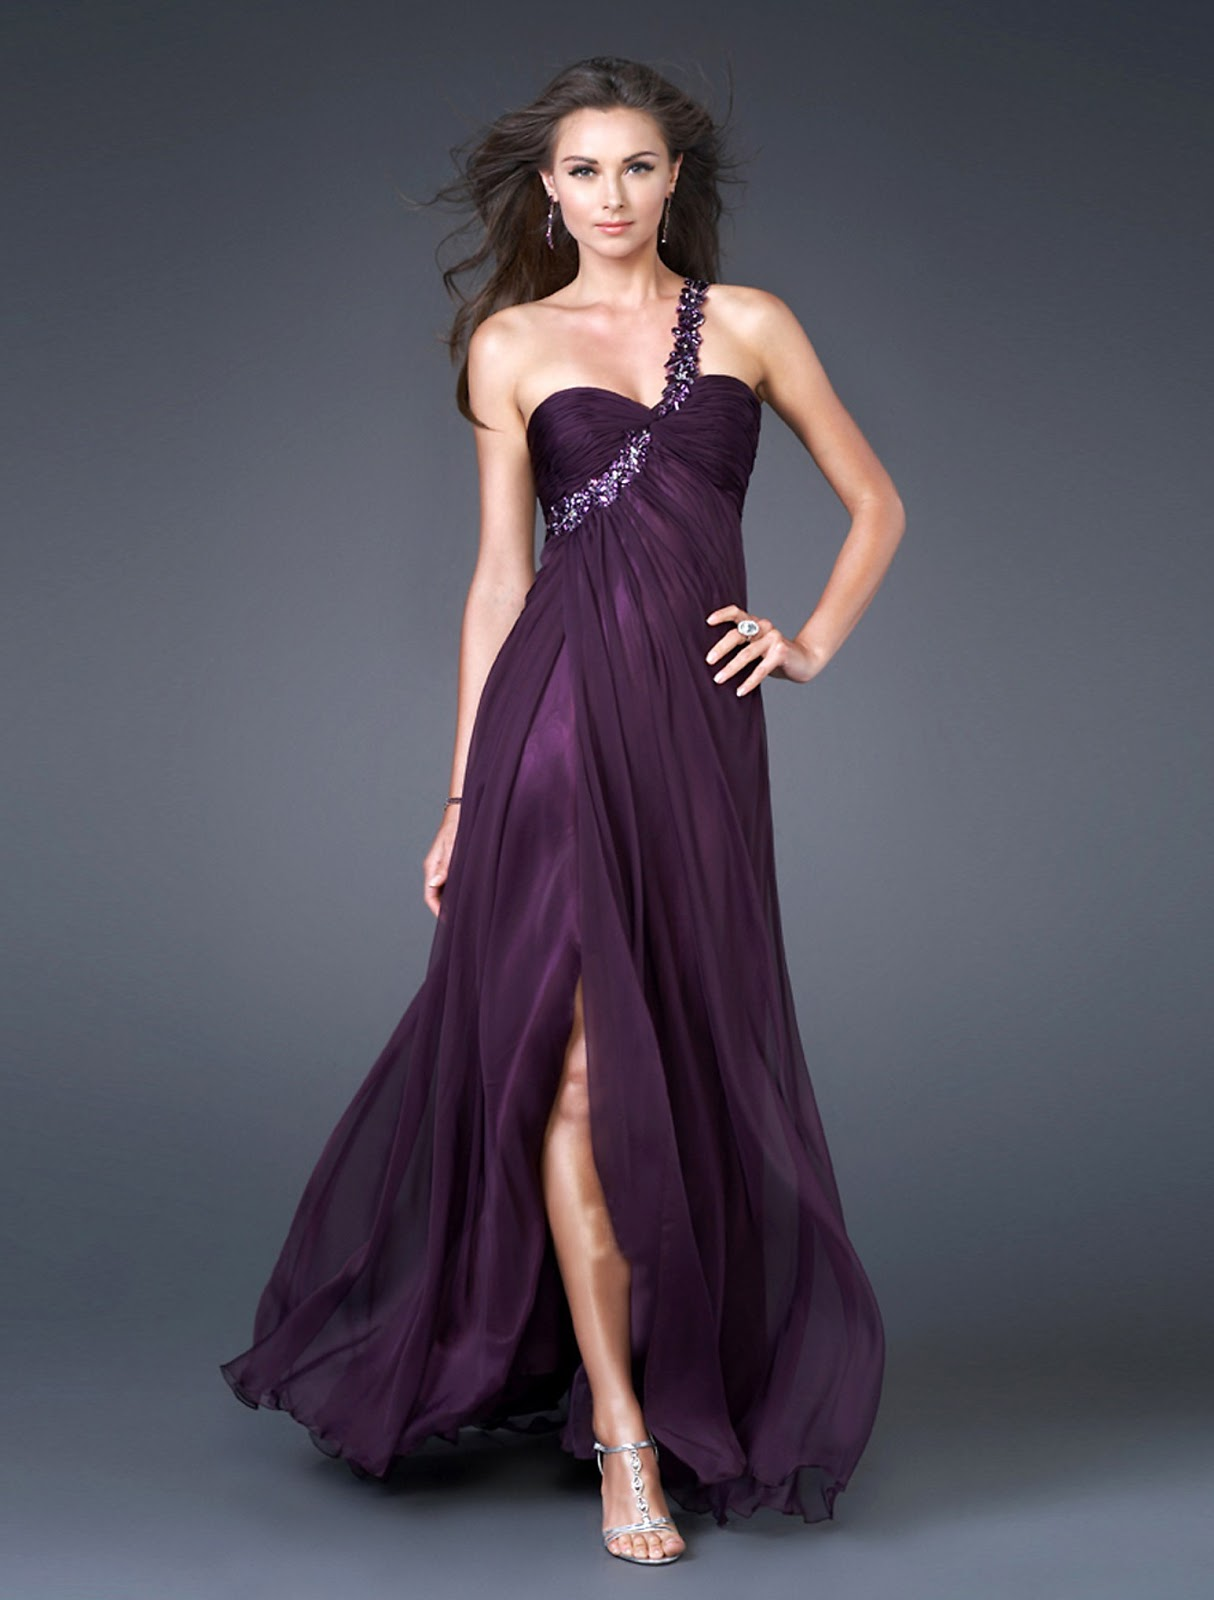 The Marine Corps Birthday Ball: Dress Ideas